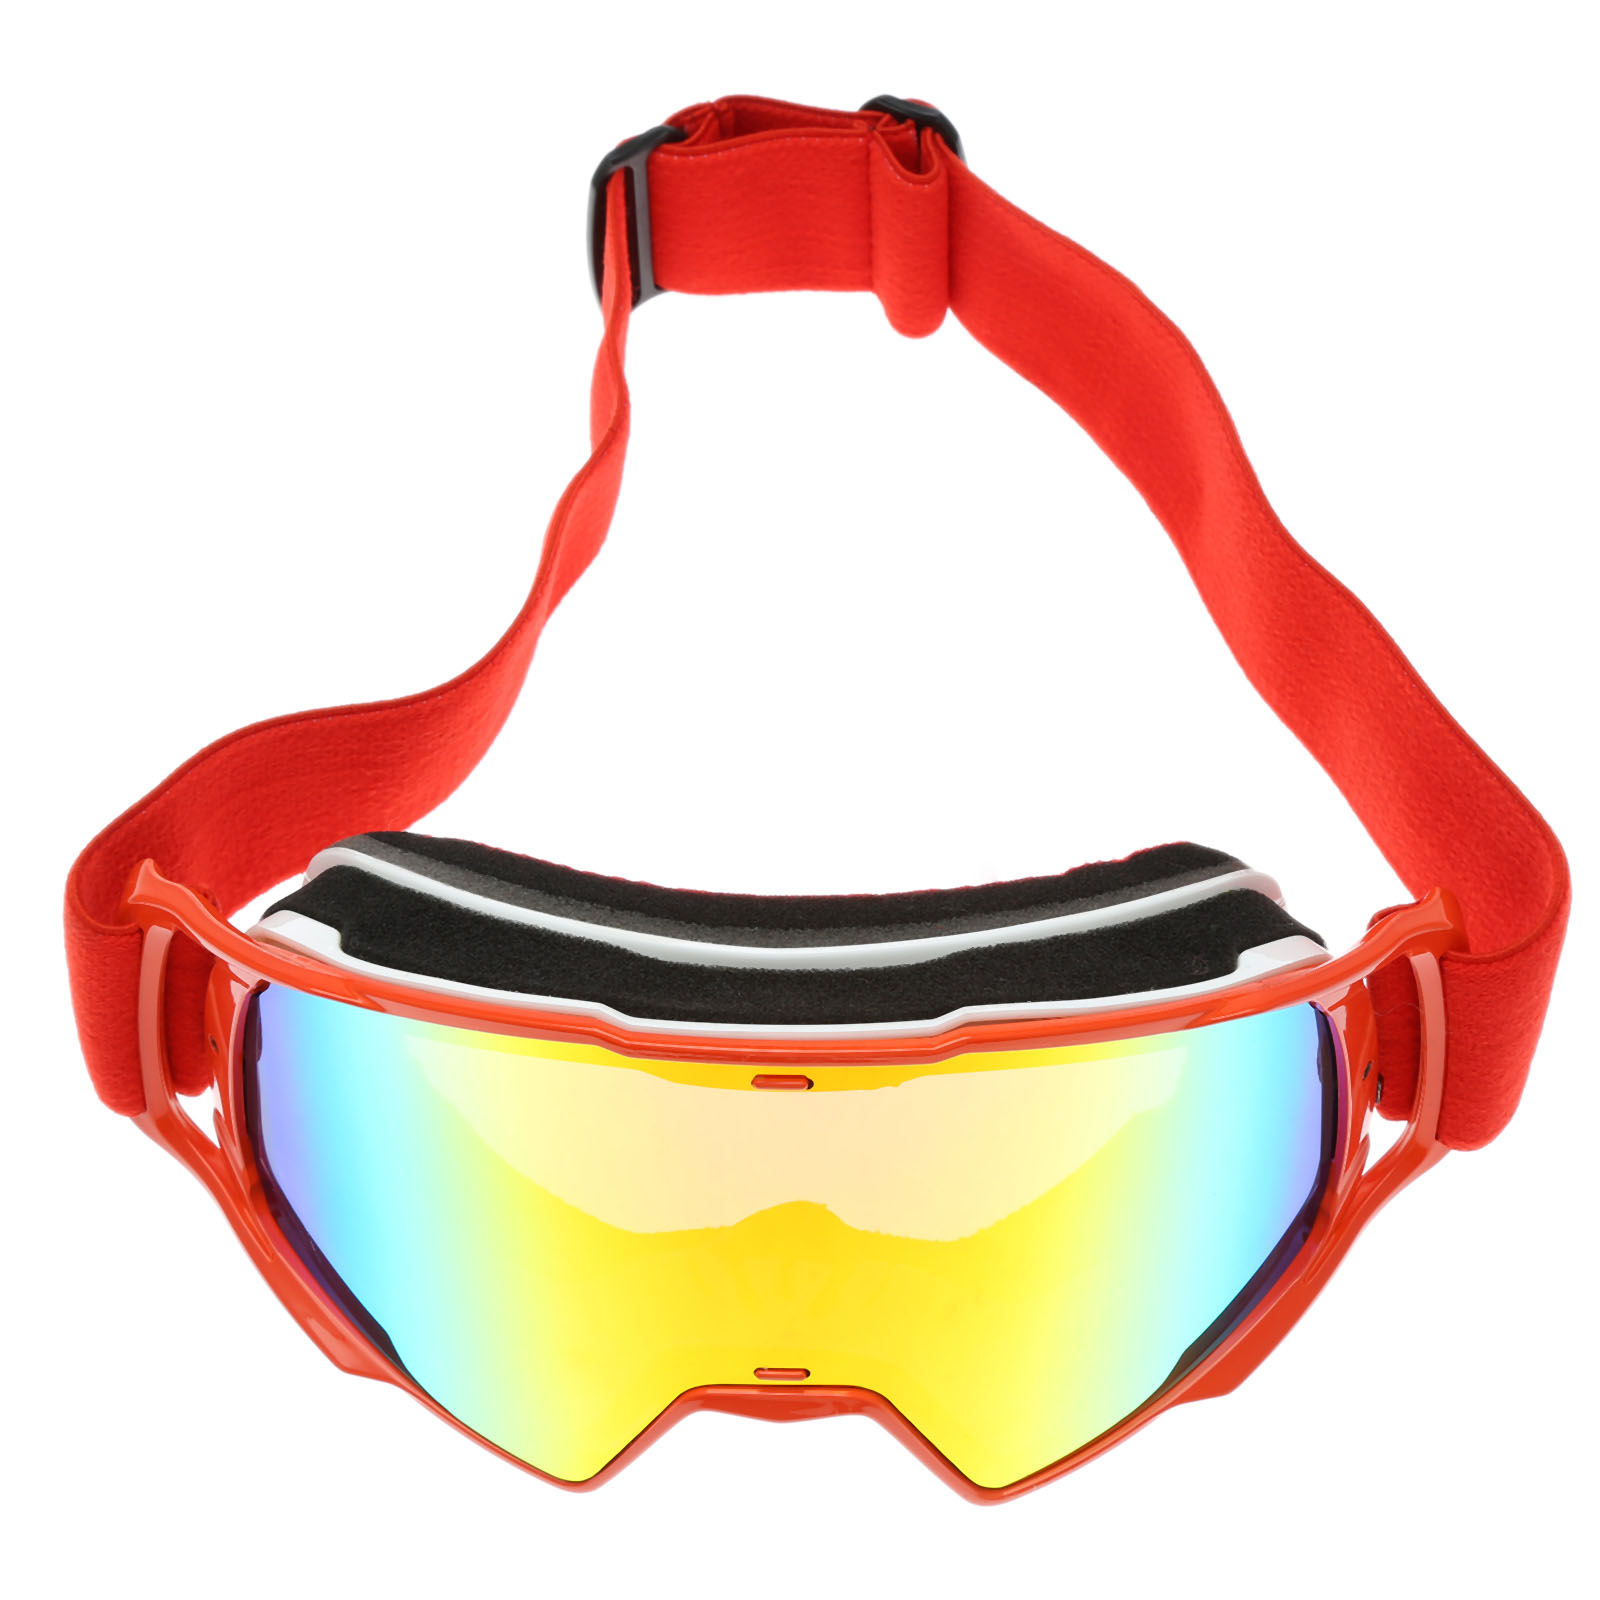 New Anti-UV Motorcycle Goggles Glasses Motocross Skiing Googles Country Sunglasses Tinted Snowboard ATV Glasses Off-Road Eyewear(China (Mainland))